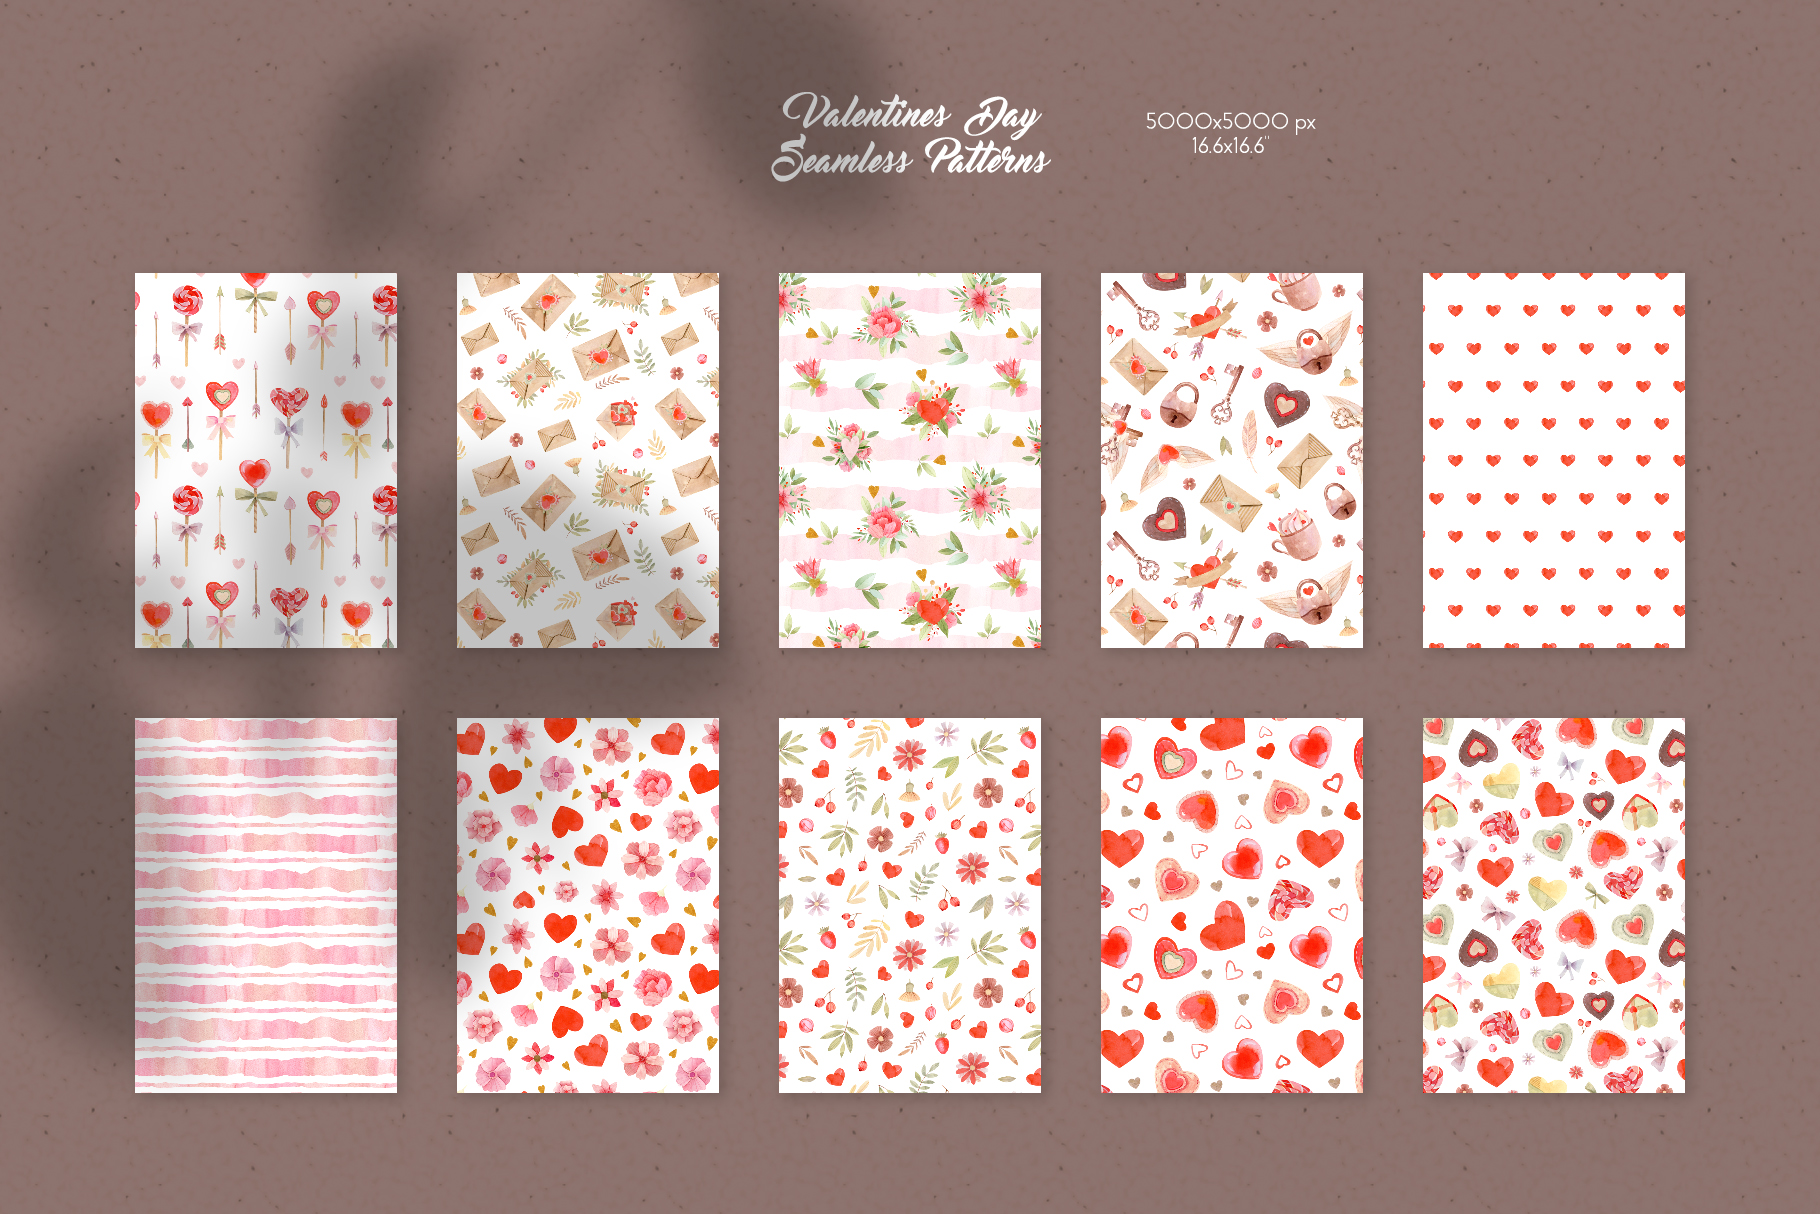 Valentines Day Seamless Patterns example image 2